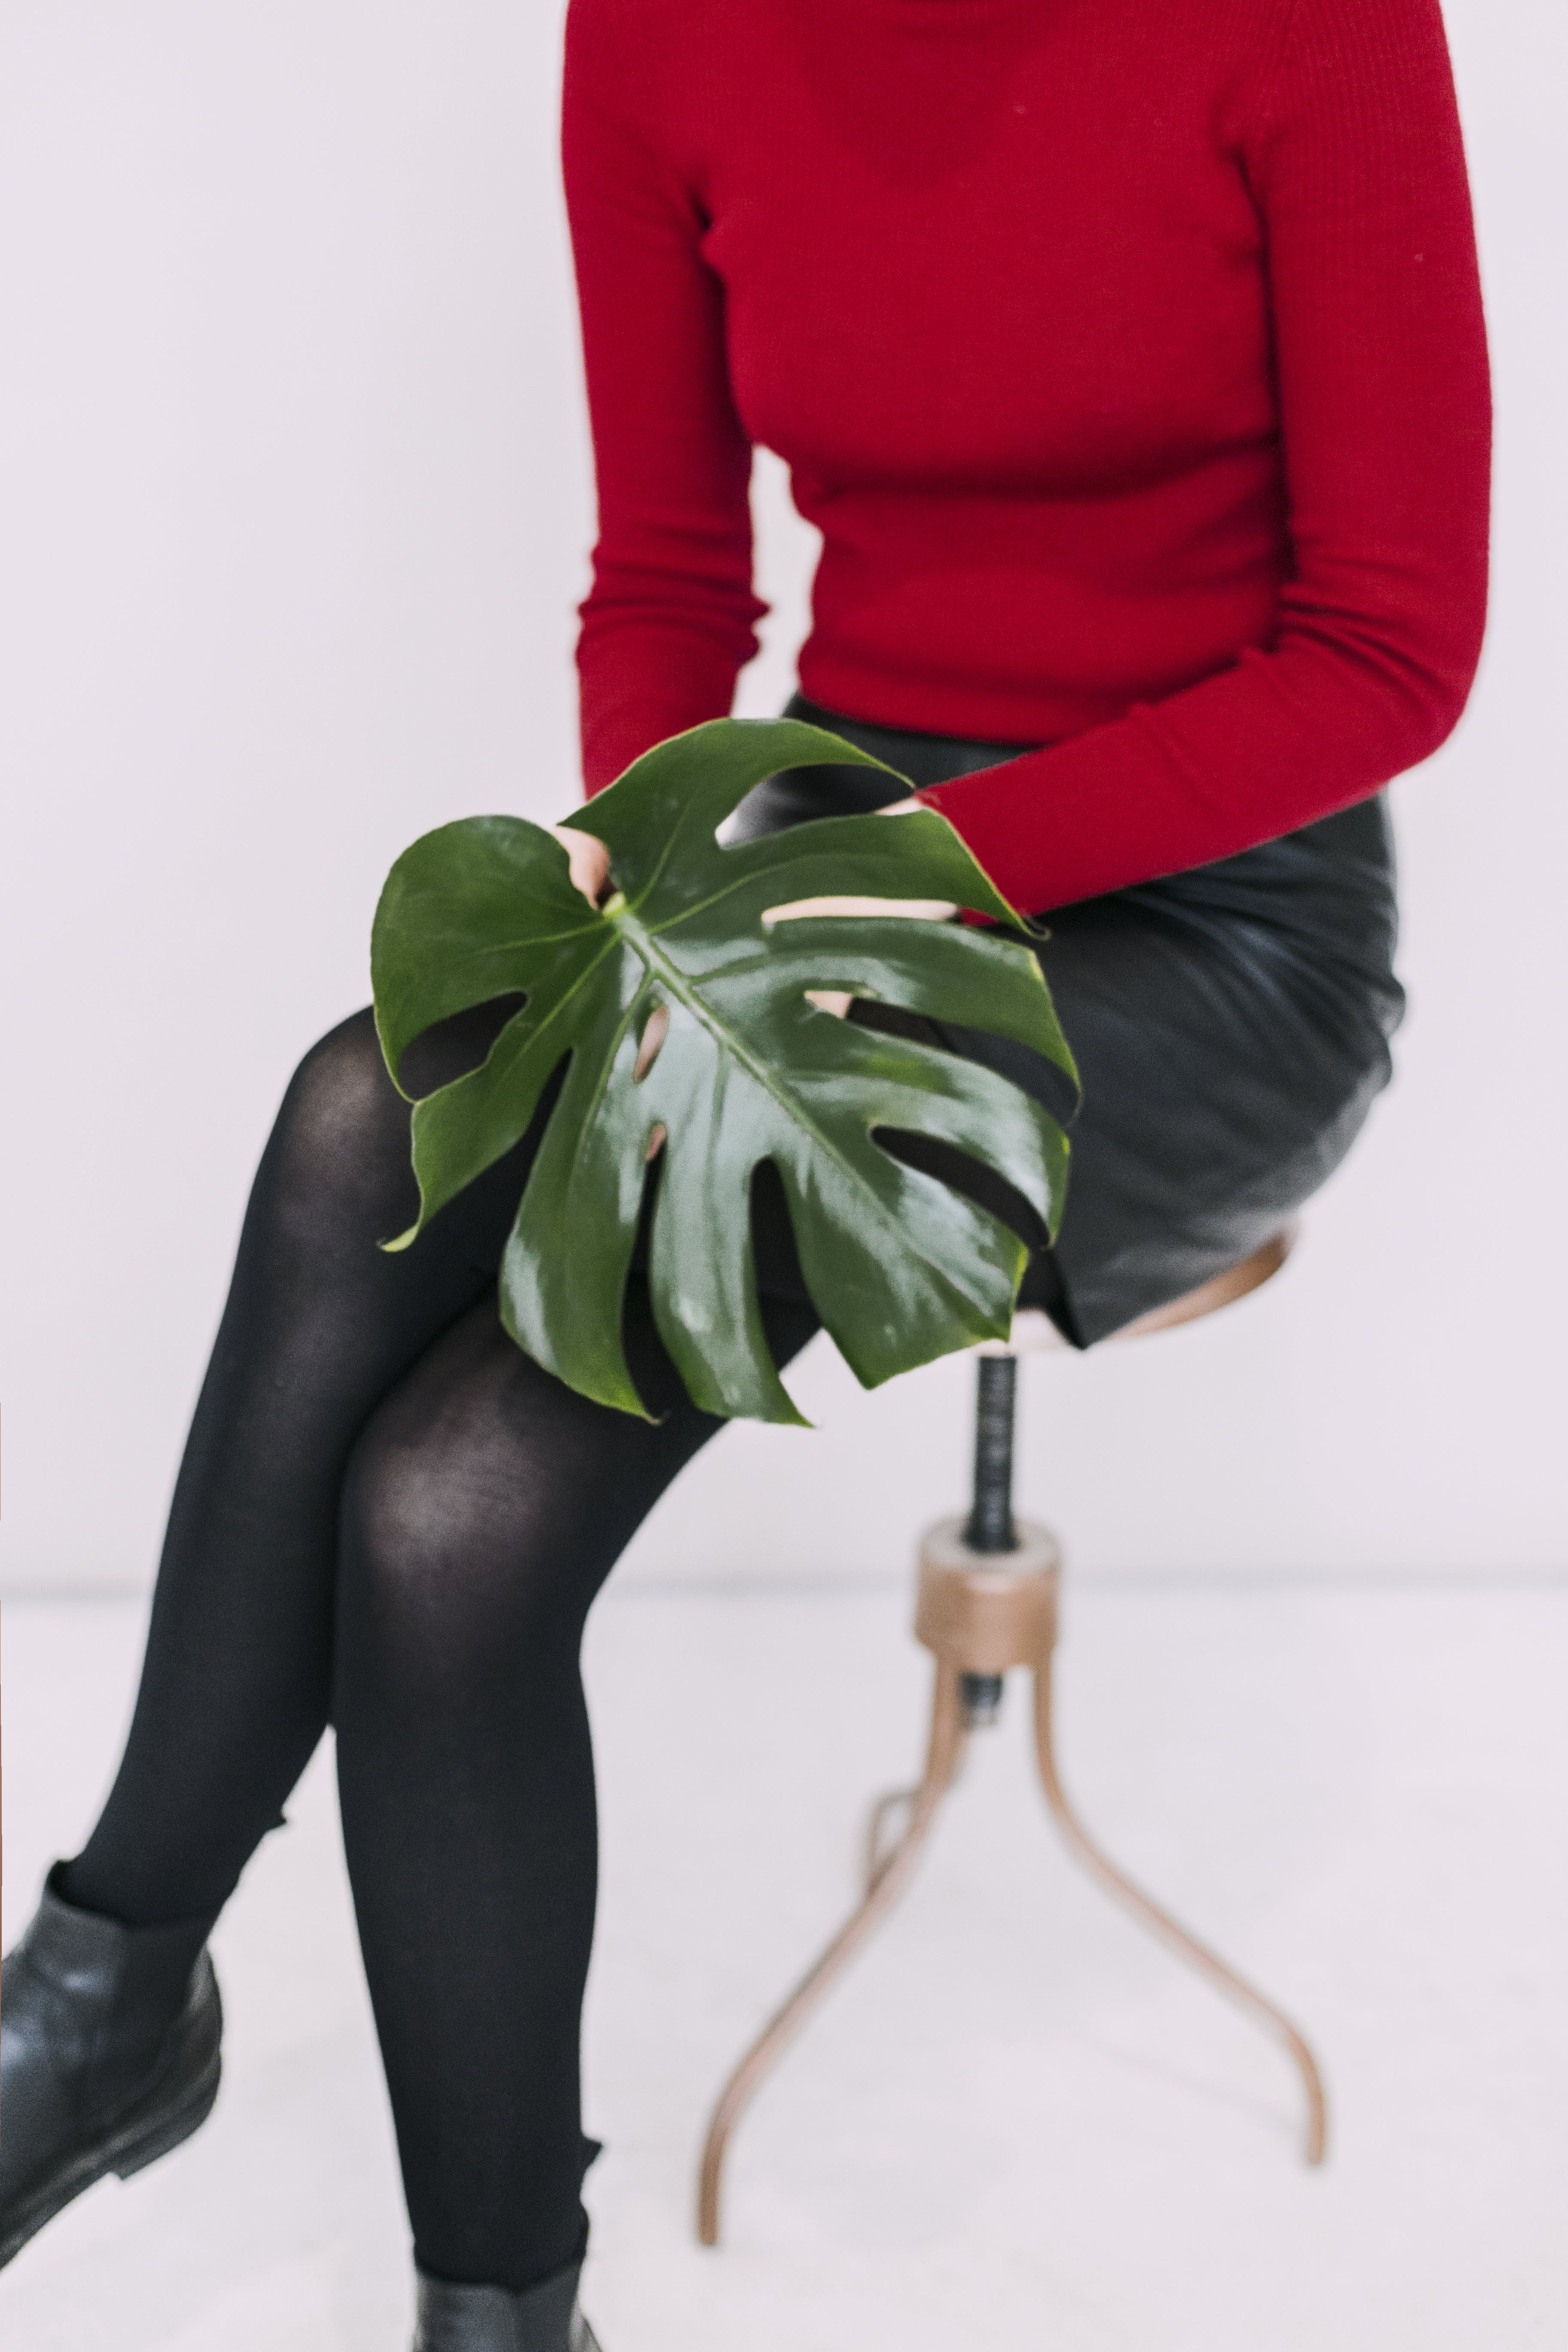 Woman in Red Sweater and Black Pants Holding Green Leaf